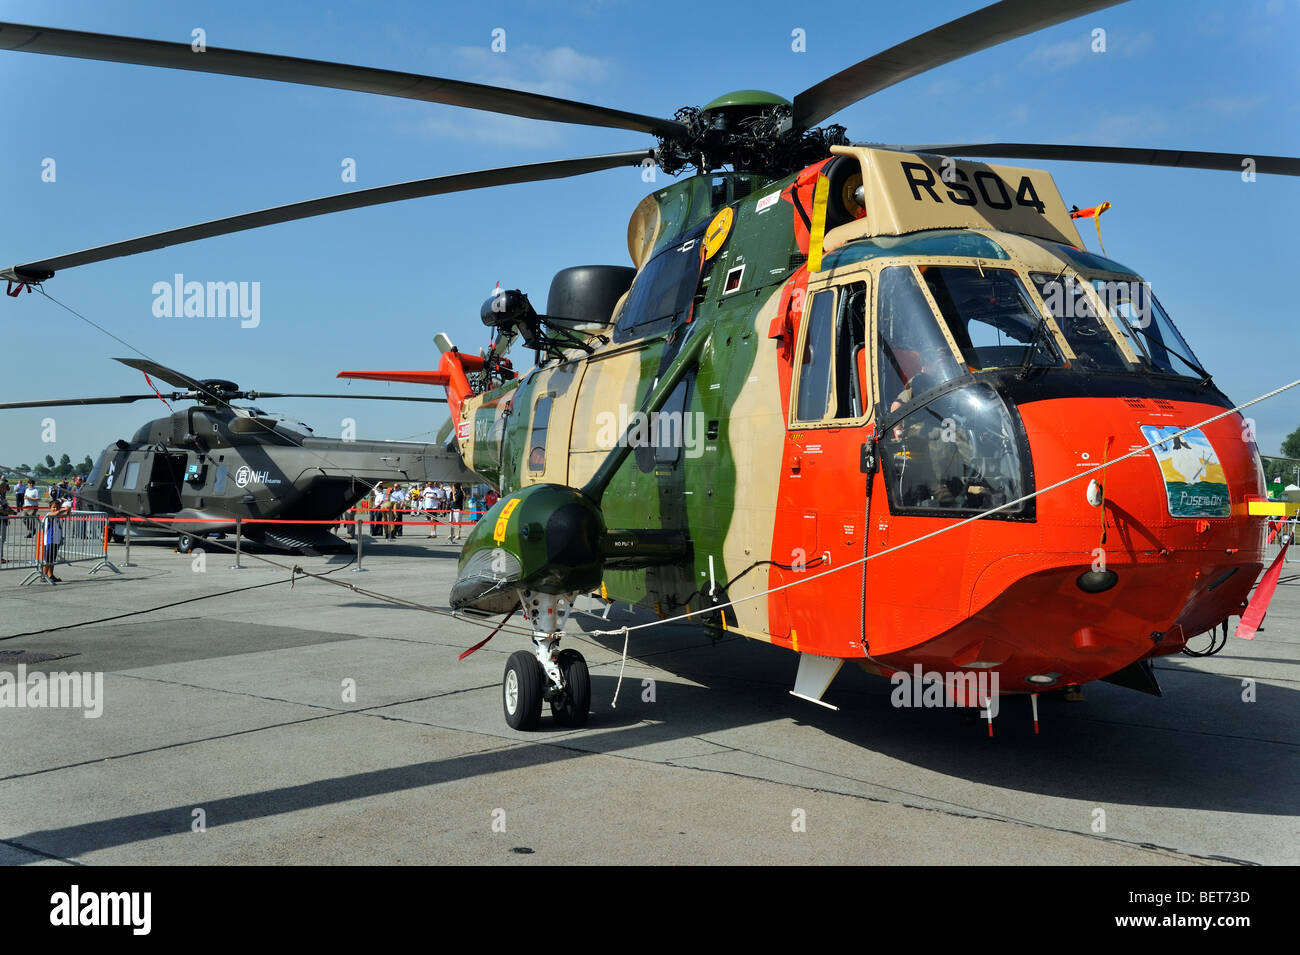 The Sea King military helicopter at airshow in Koksijde, Belgium - Stock Image